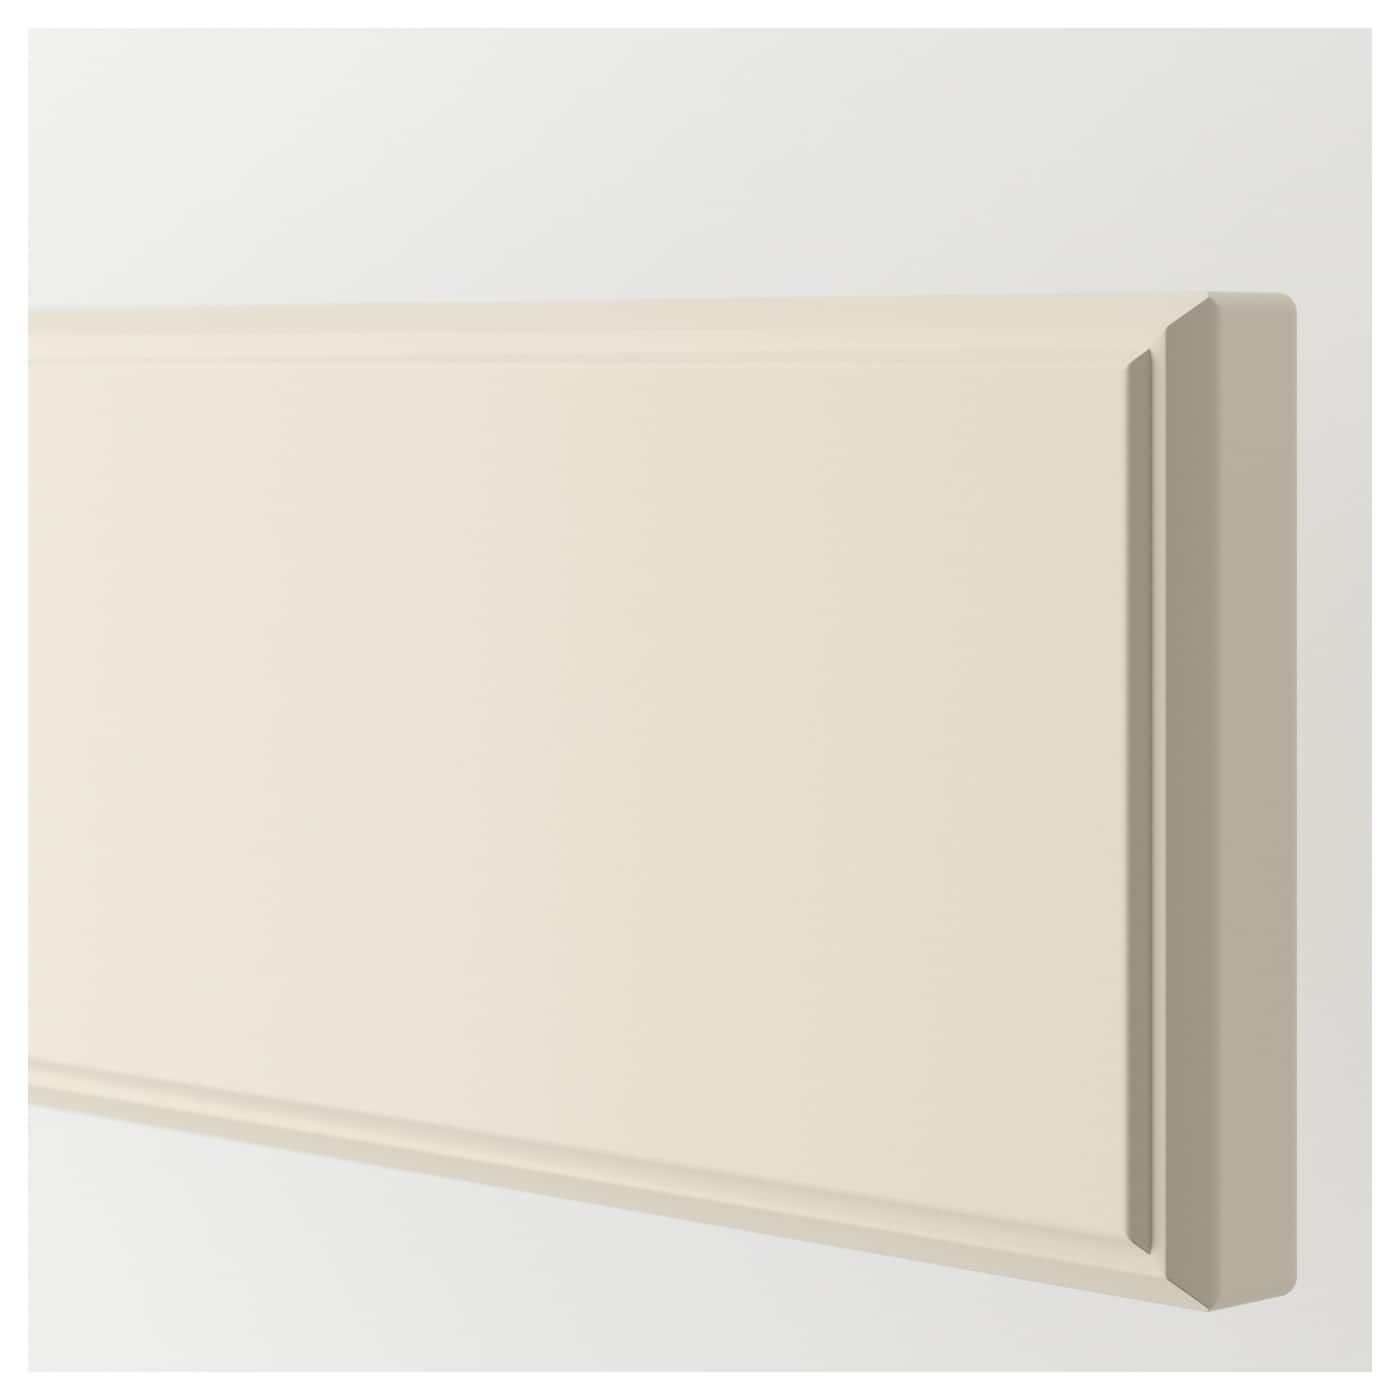 Best Bodbyn Drawer Front Off White 15X5 38X13 Cm With 400 x 300